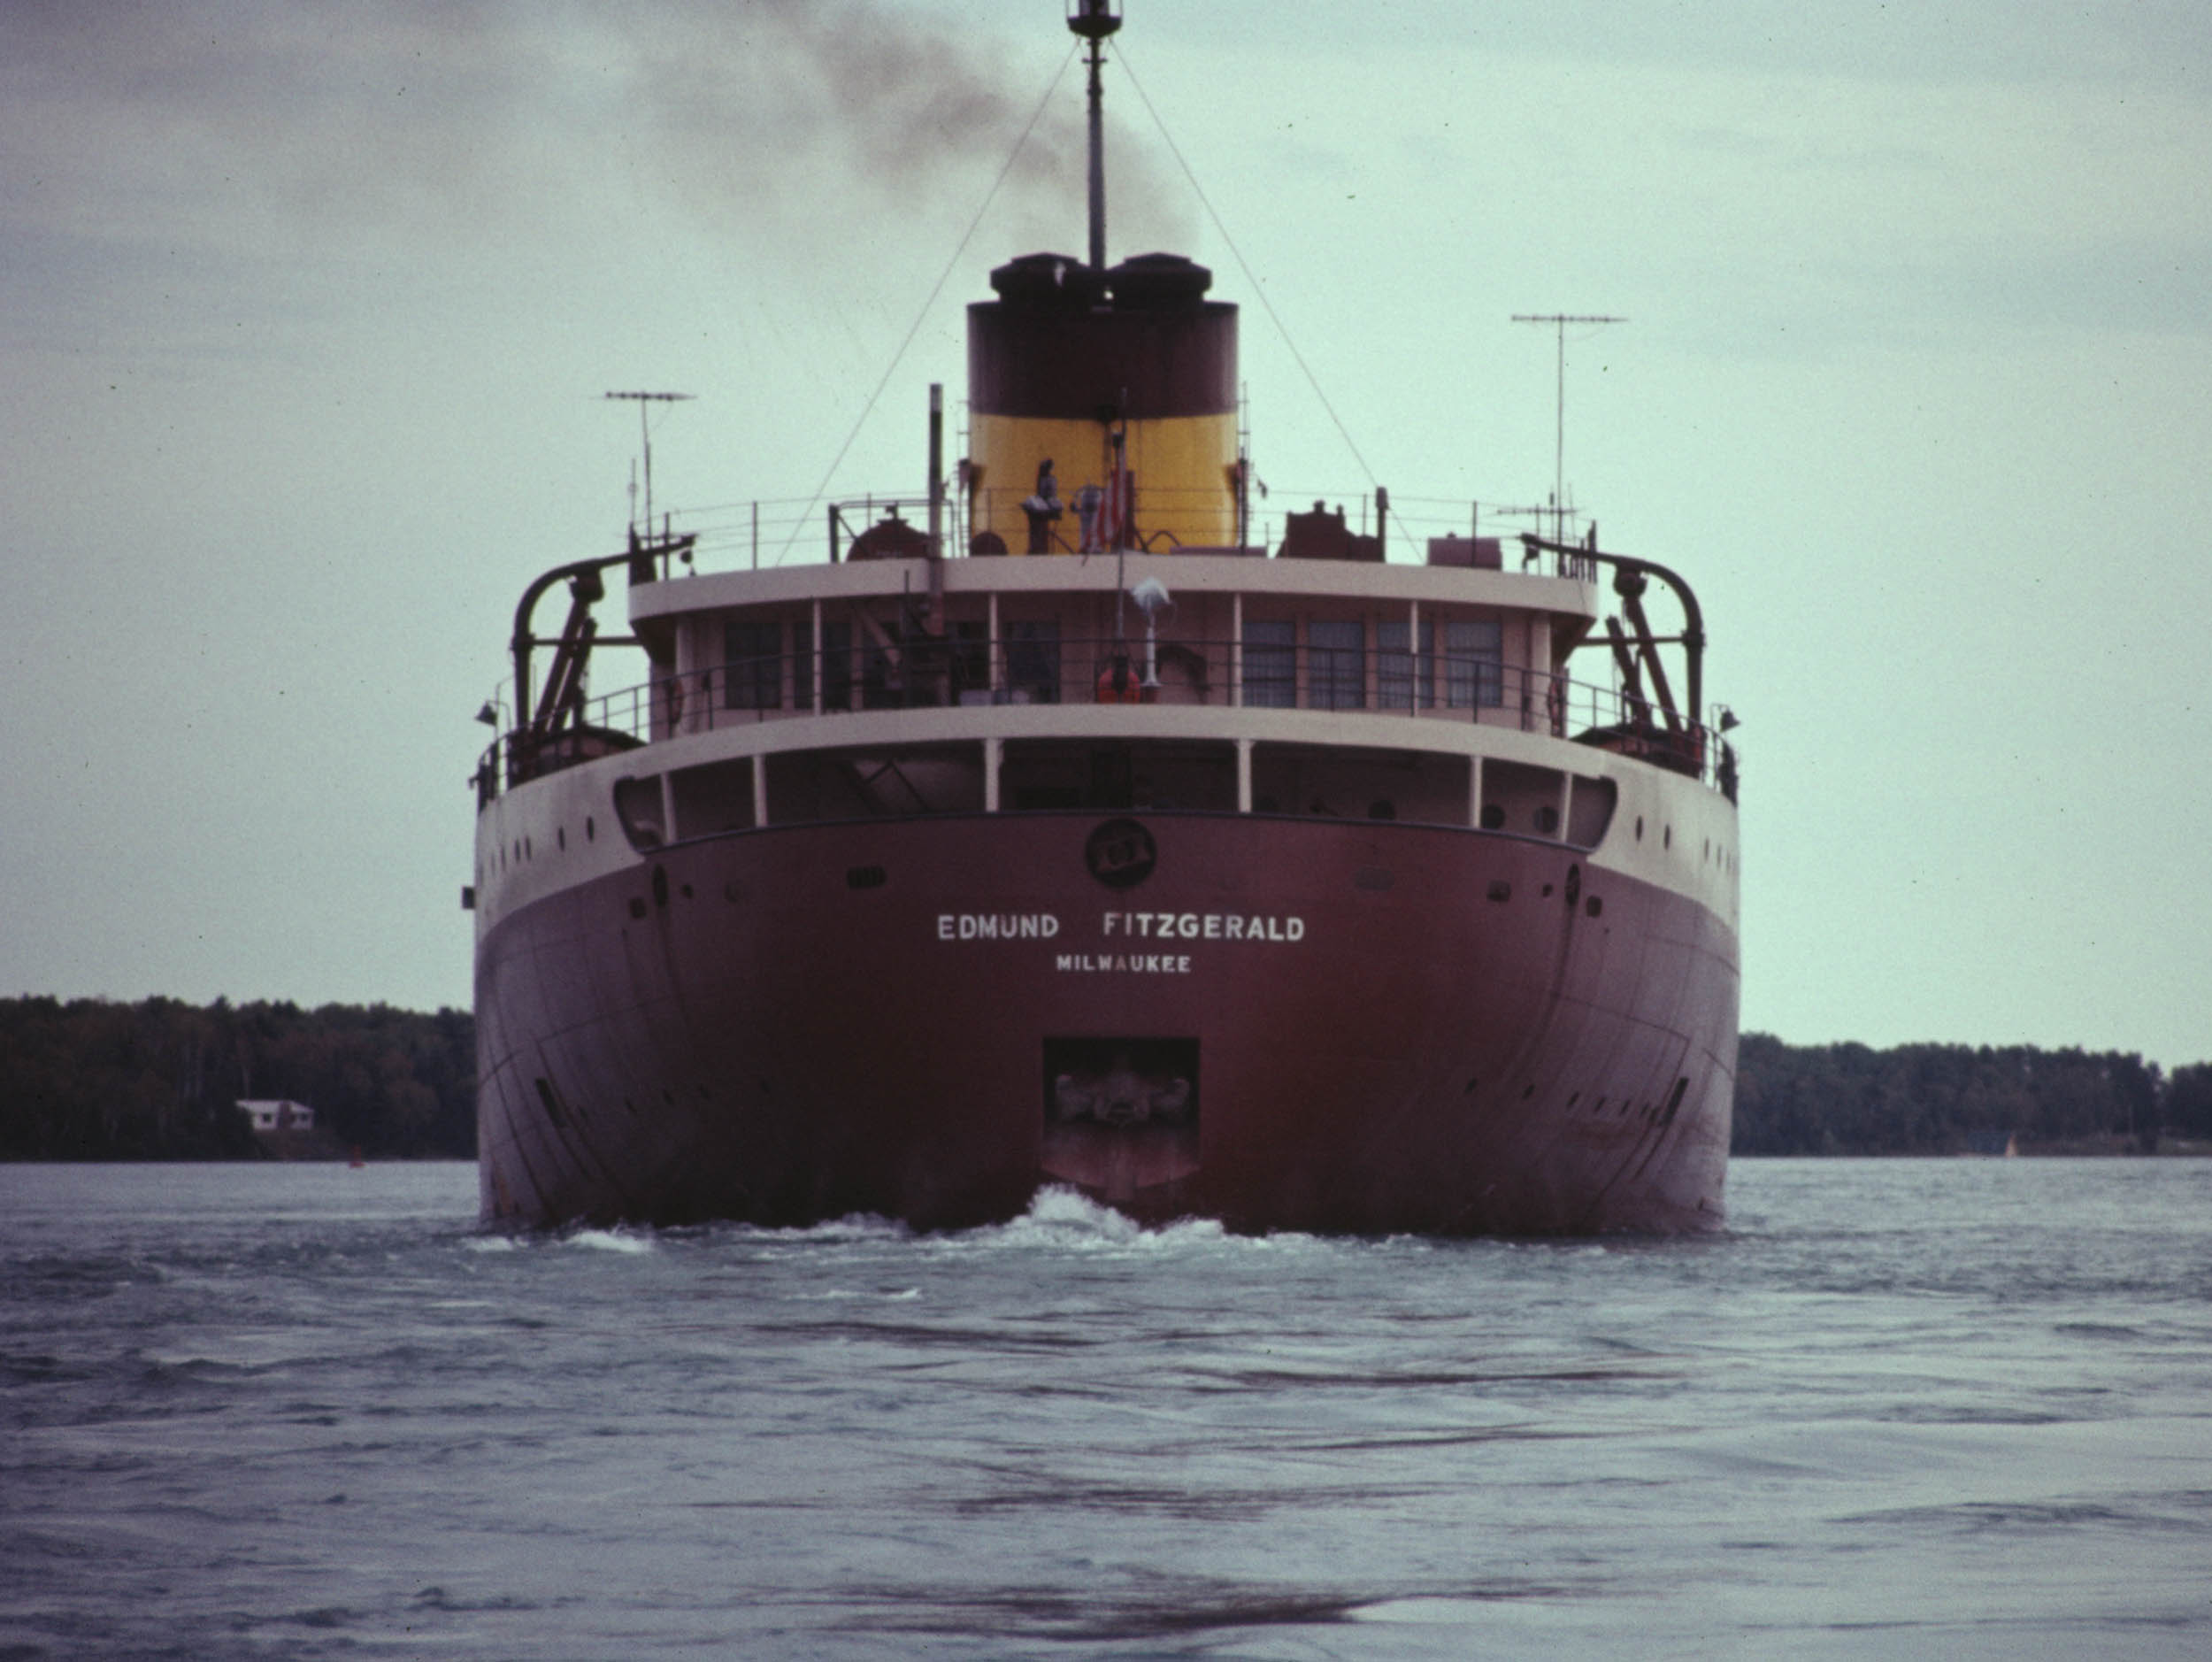 """an analysis of the stanzas of wreck of the edmund fitzgerald by gordon lightfoot Lyrics to """"the wreck of the edmund fitzgerald"""" by gordon lightfoot stanza by stanza, pointing play the song """"the wreck of the edmund fitzgerald"""" by."""